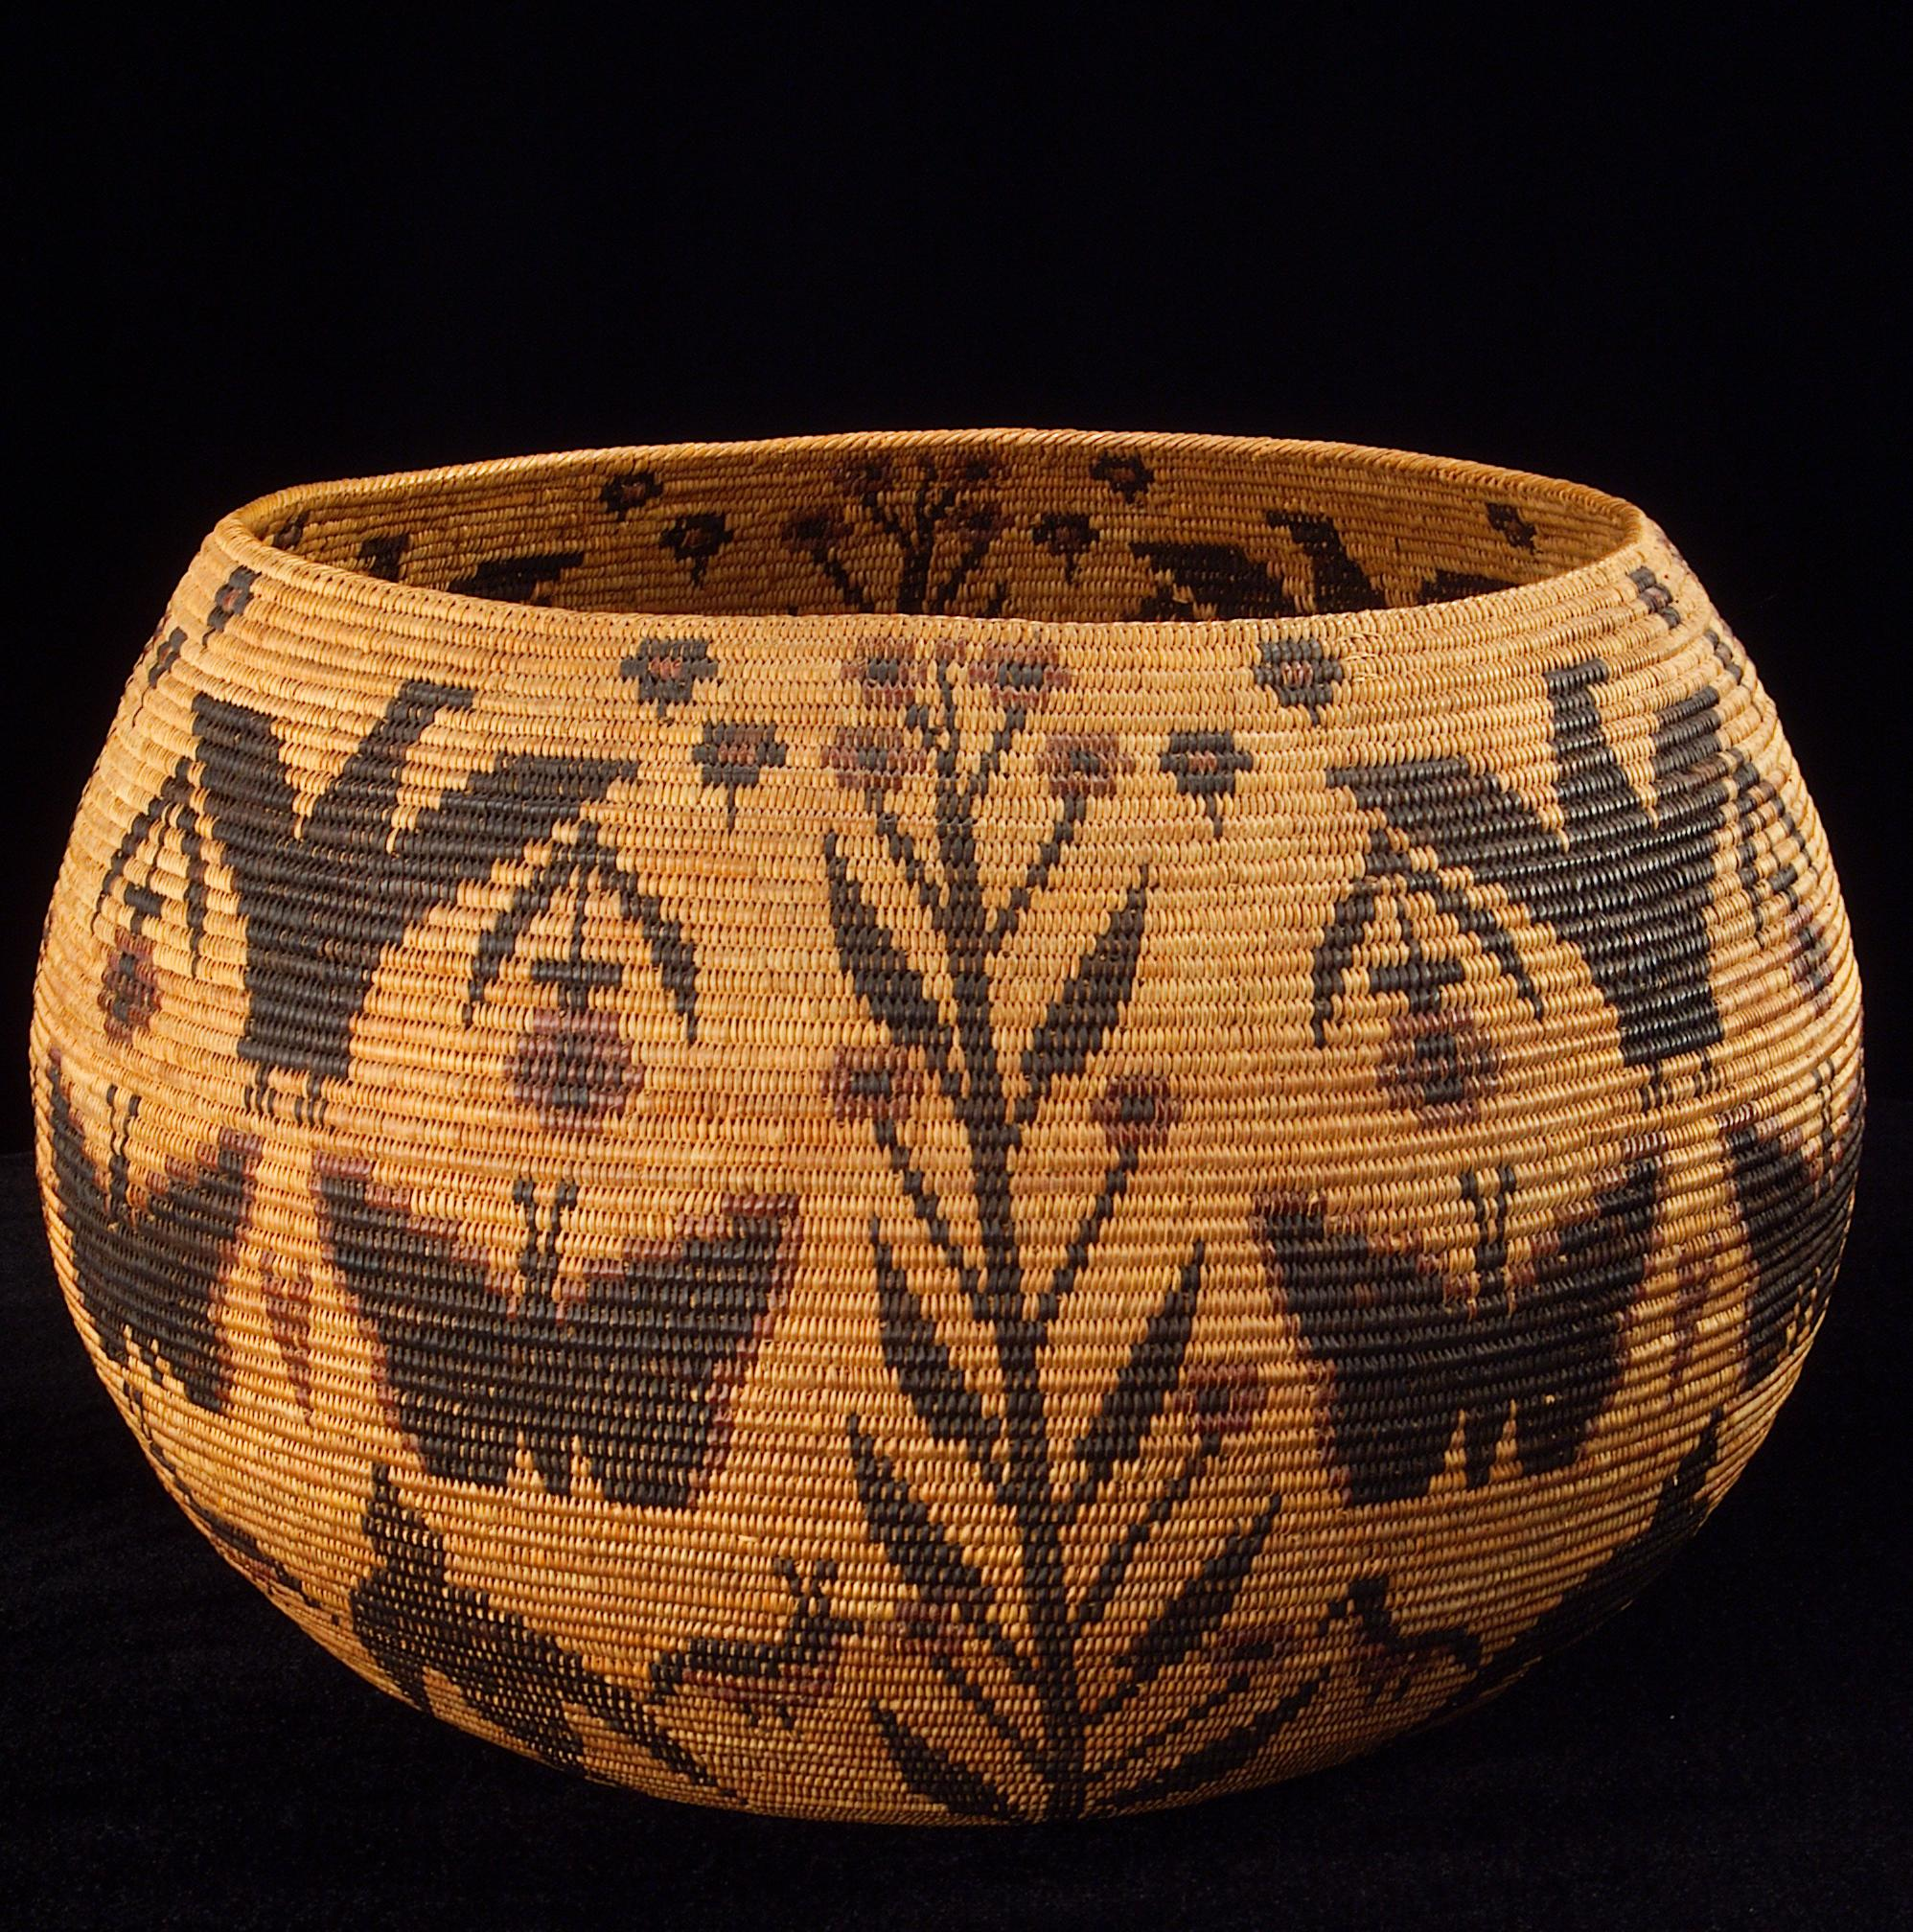 A basket woven by Mono Lake Paiute - Kucadikadi (Northern Paiute) and Southern Sierra Miwok (Yosemite Miwok) artisan Lucy Telles. In the collection of the Smithsonian's National Museum of the American Indian.